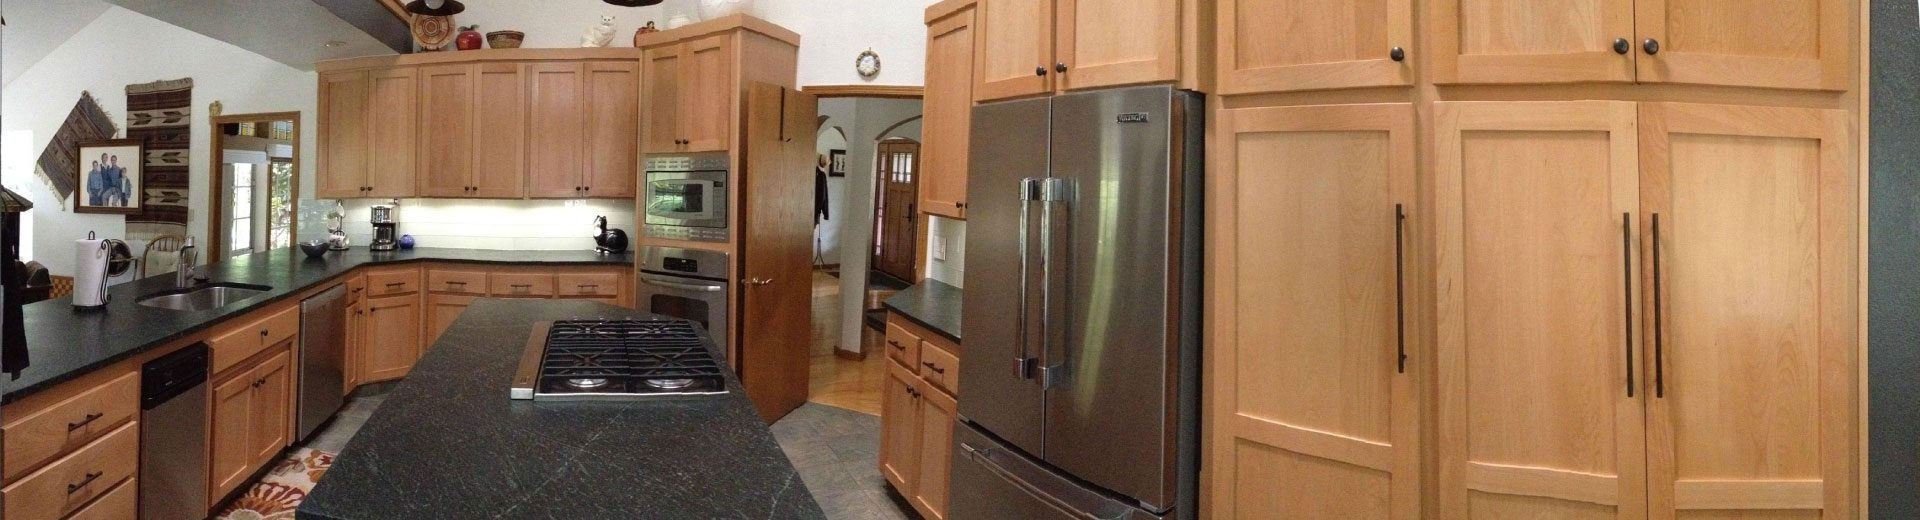 Kitchen cabinets cramer 39 s installations unlimited 209 for Bruce kitchen cabinets